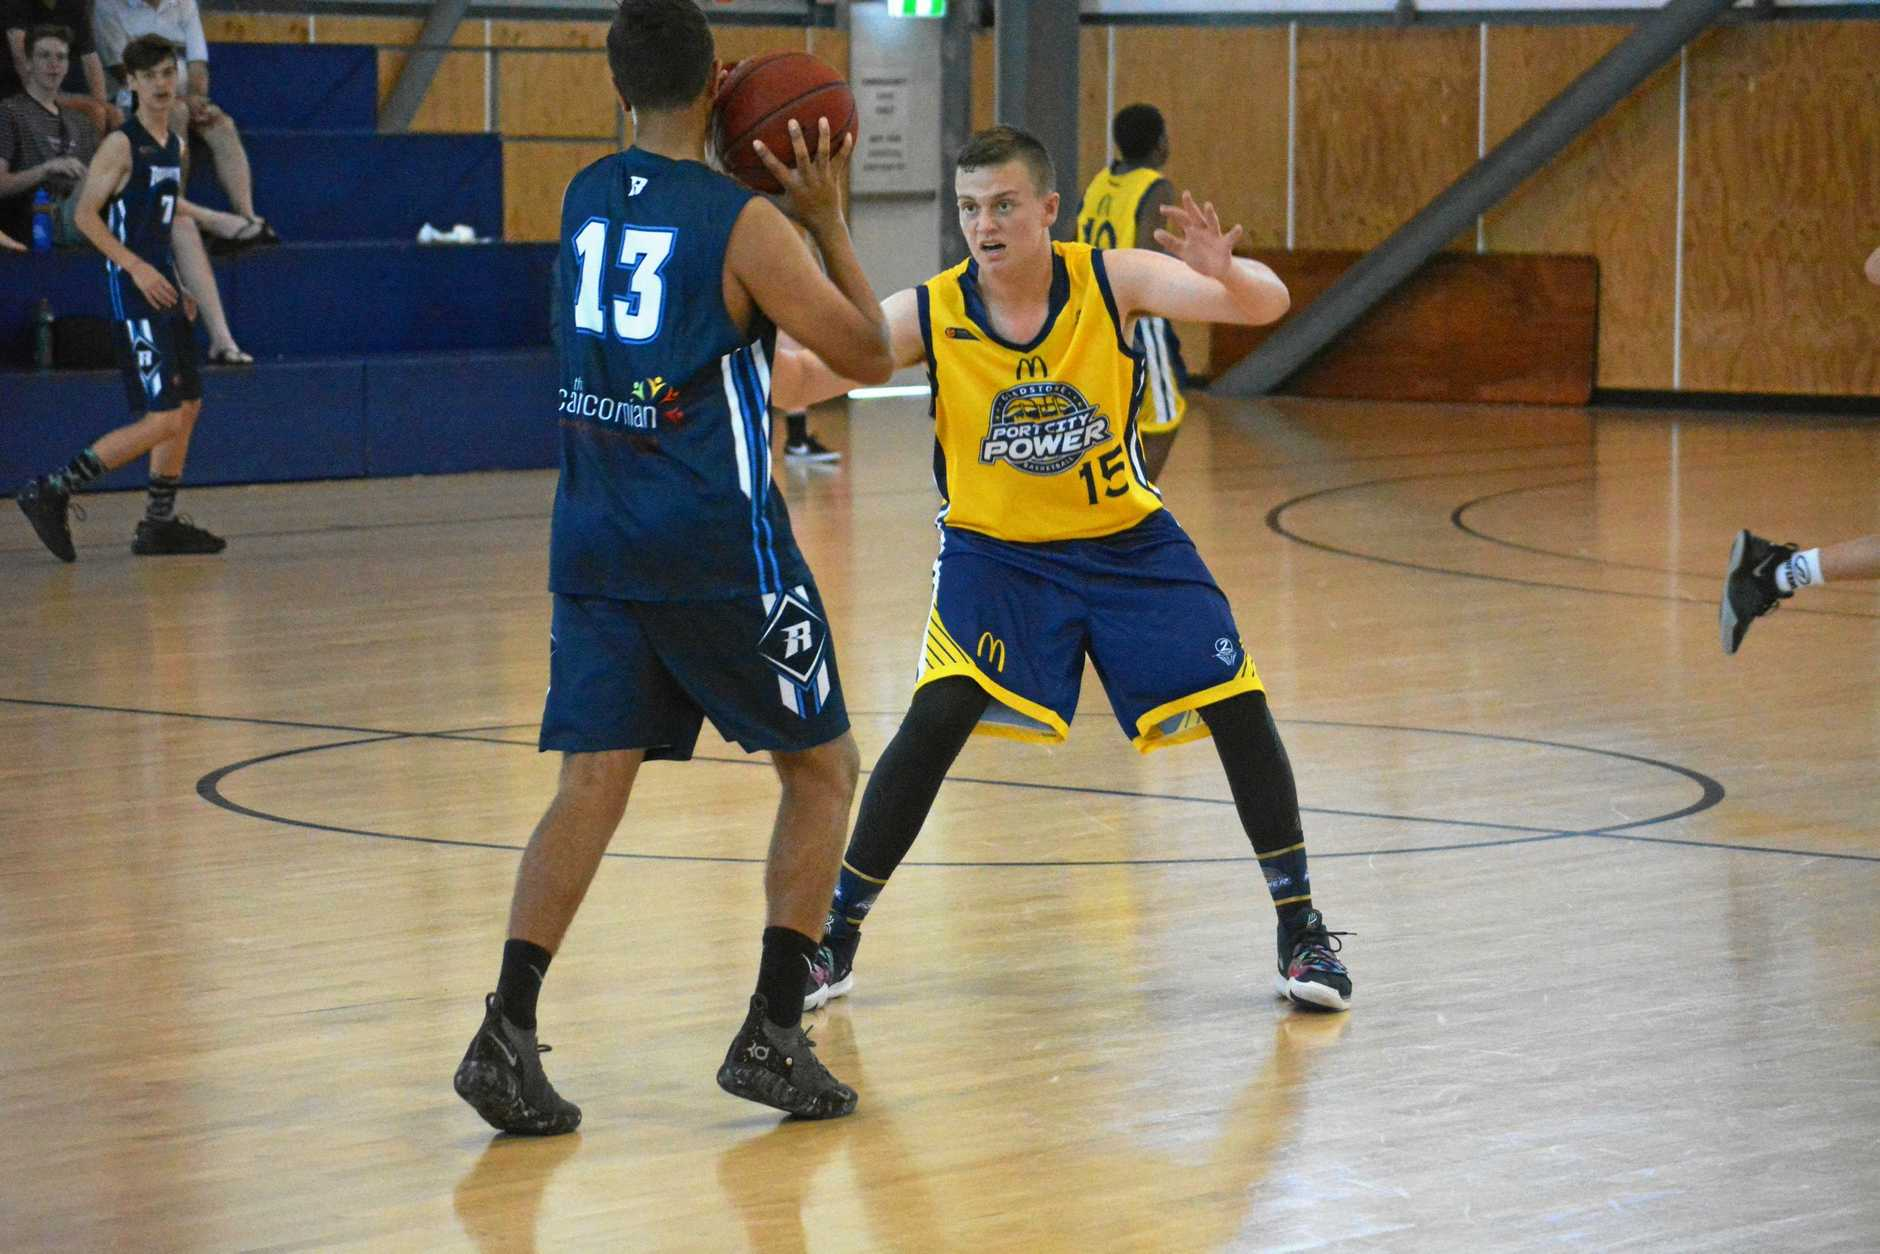 BIG IMPROVER: Biloela-based Owen Gardiner will be one of the key players for Gladstone in this weekend's CDC. Here, Owen defends Rockhampton's Lleyton Muggeridge in CDC number two in Rocky in which Gladstone went undefeated 4-0.